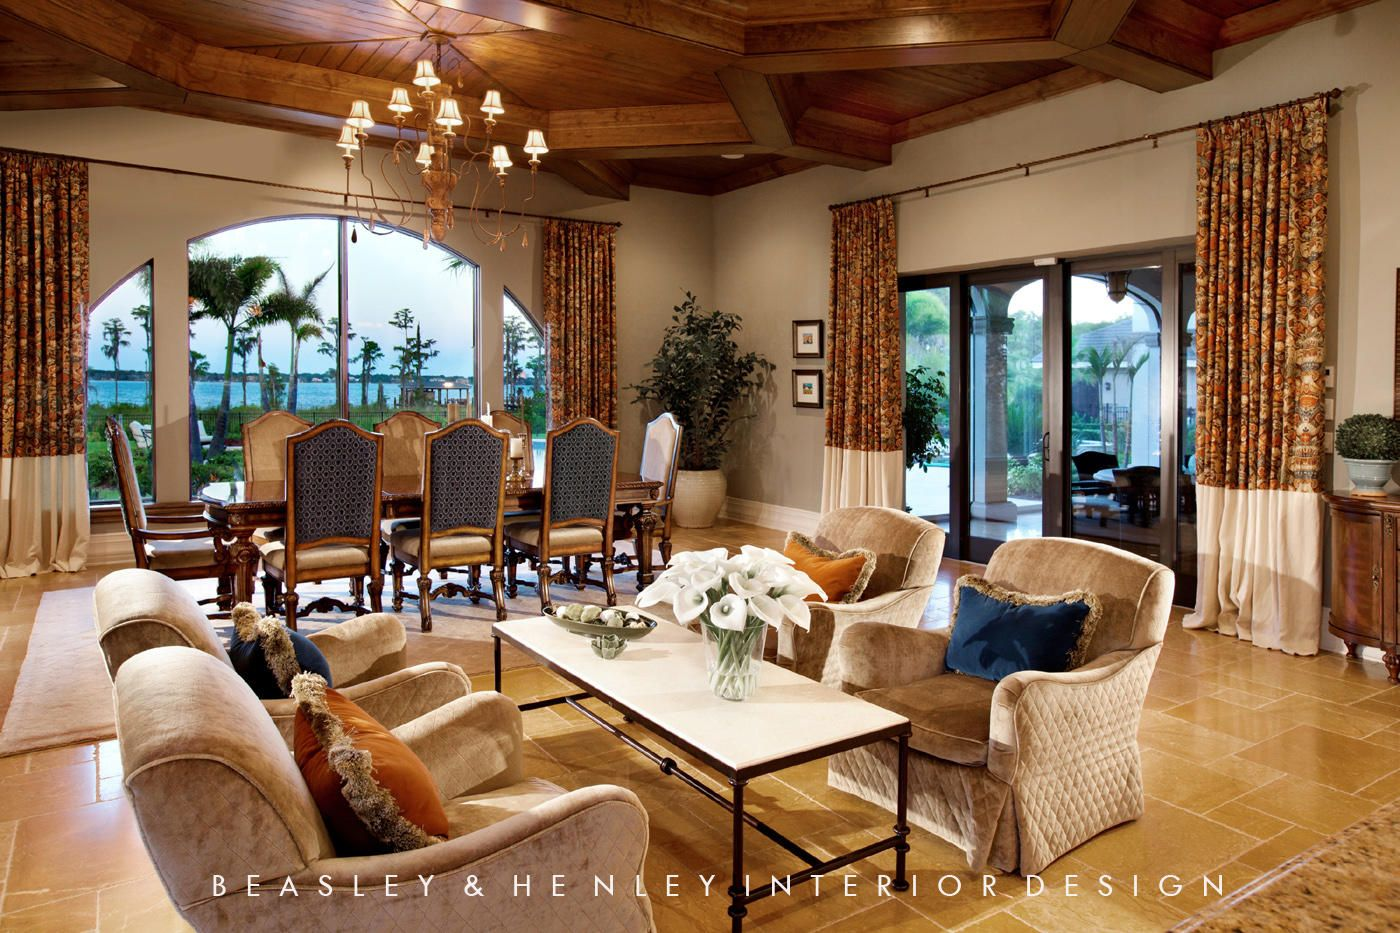 Artistic, award-winning interior design and interior detailing firm Beasley  & Henley is highly